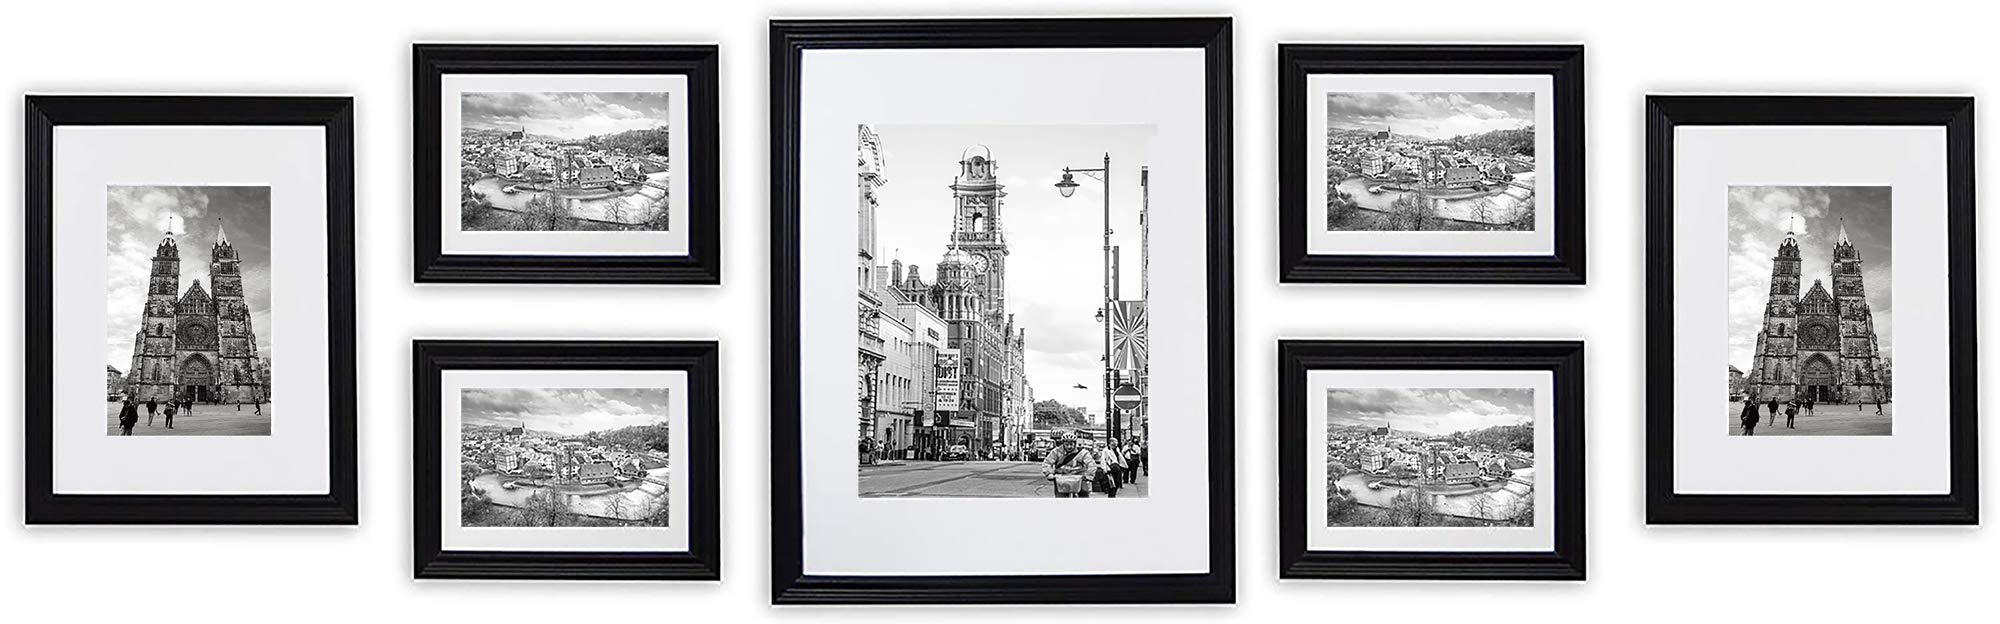 Golden State Art, Wall Frames Collection, Black Wood Frame Set for Pictures/Photos, 7 Frames by Golden State Art